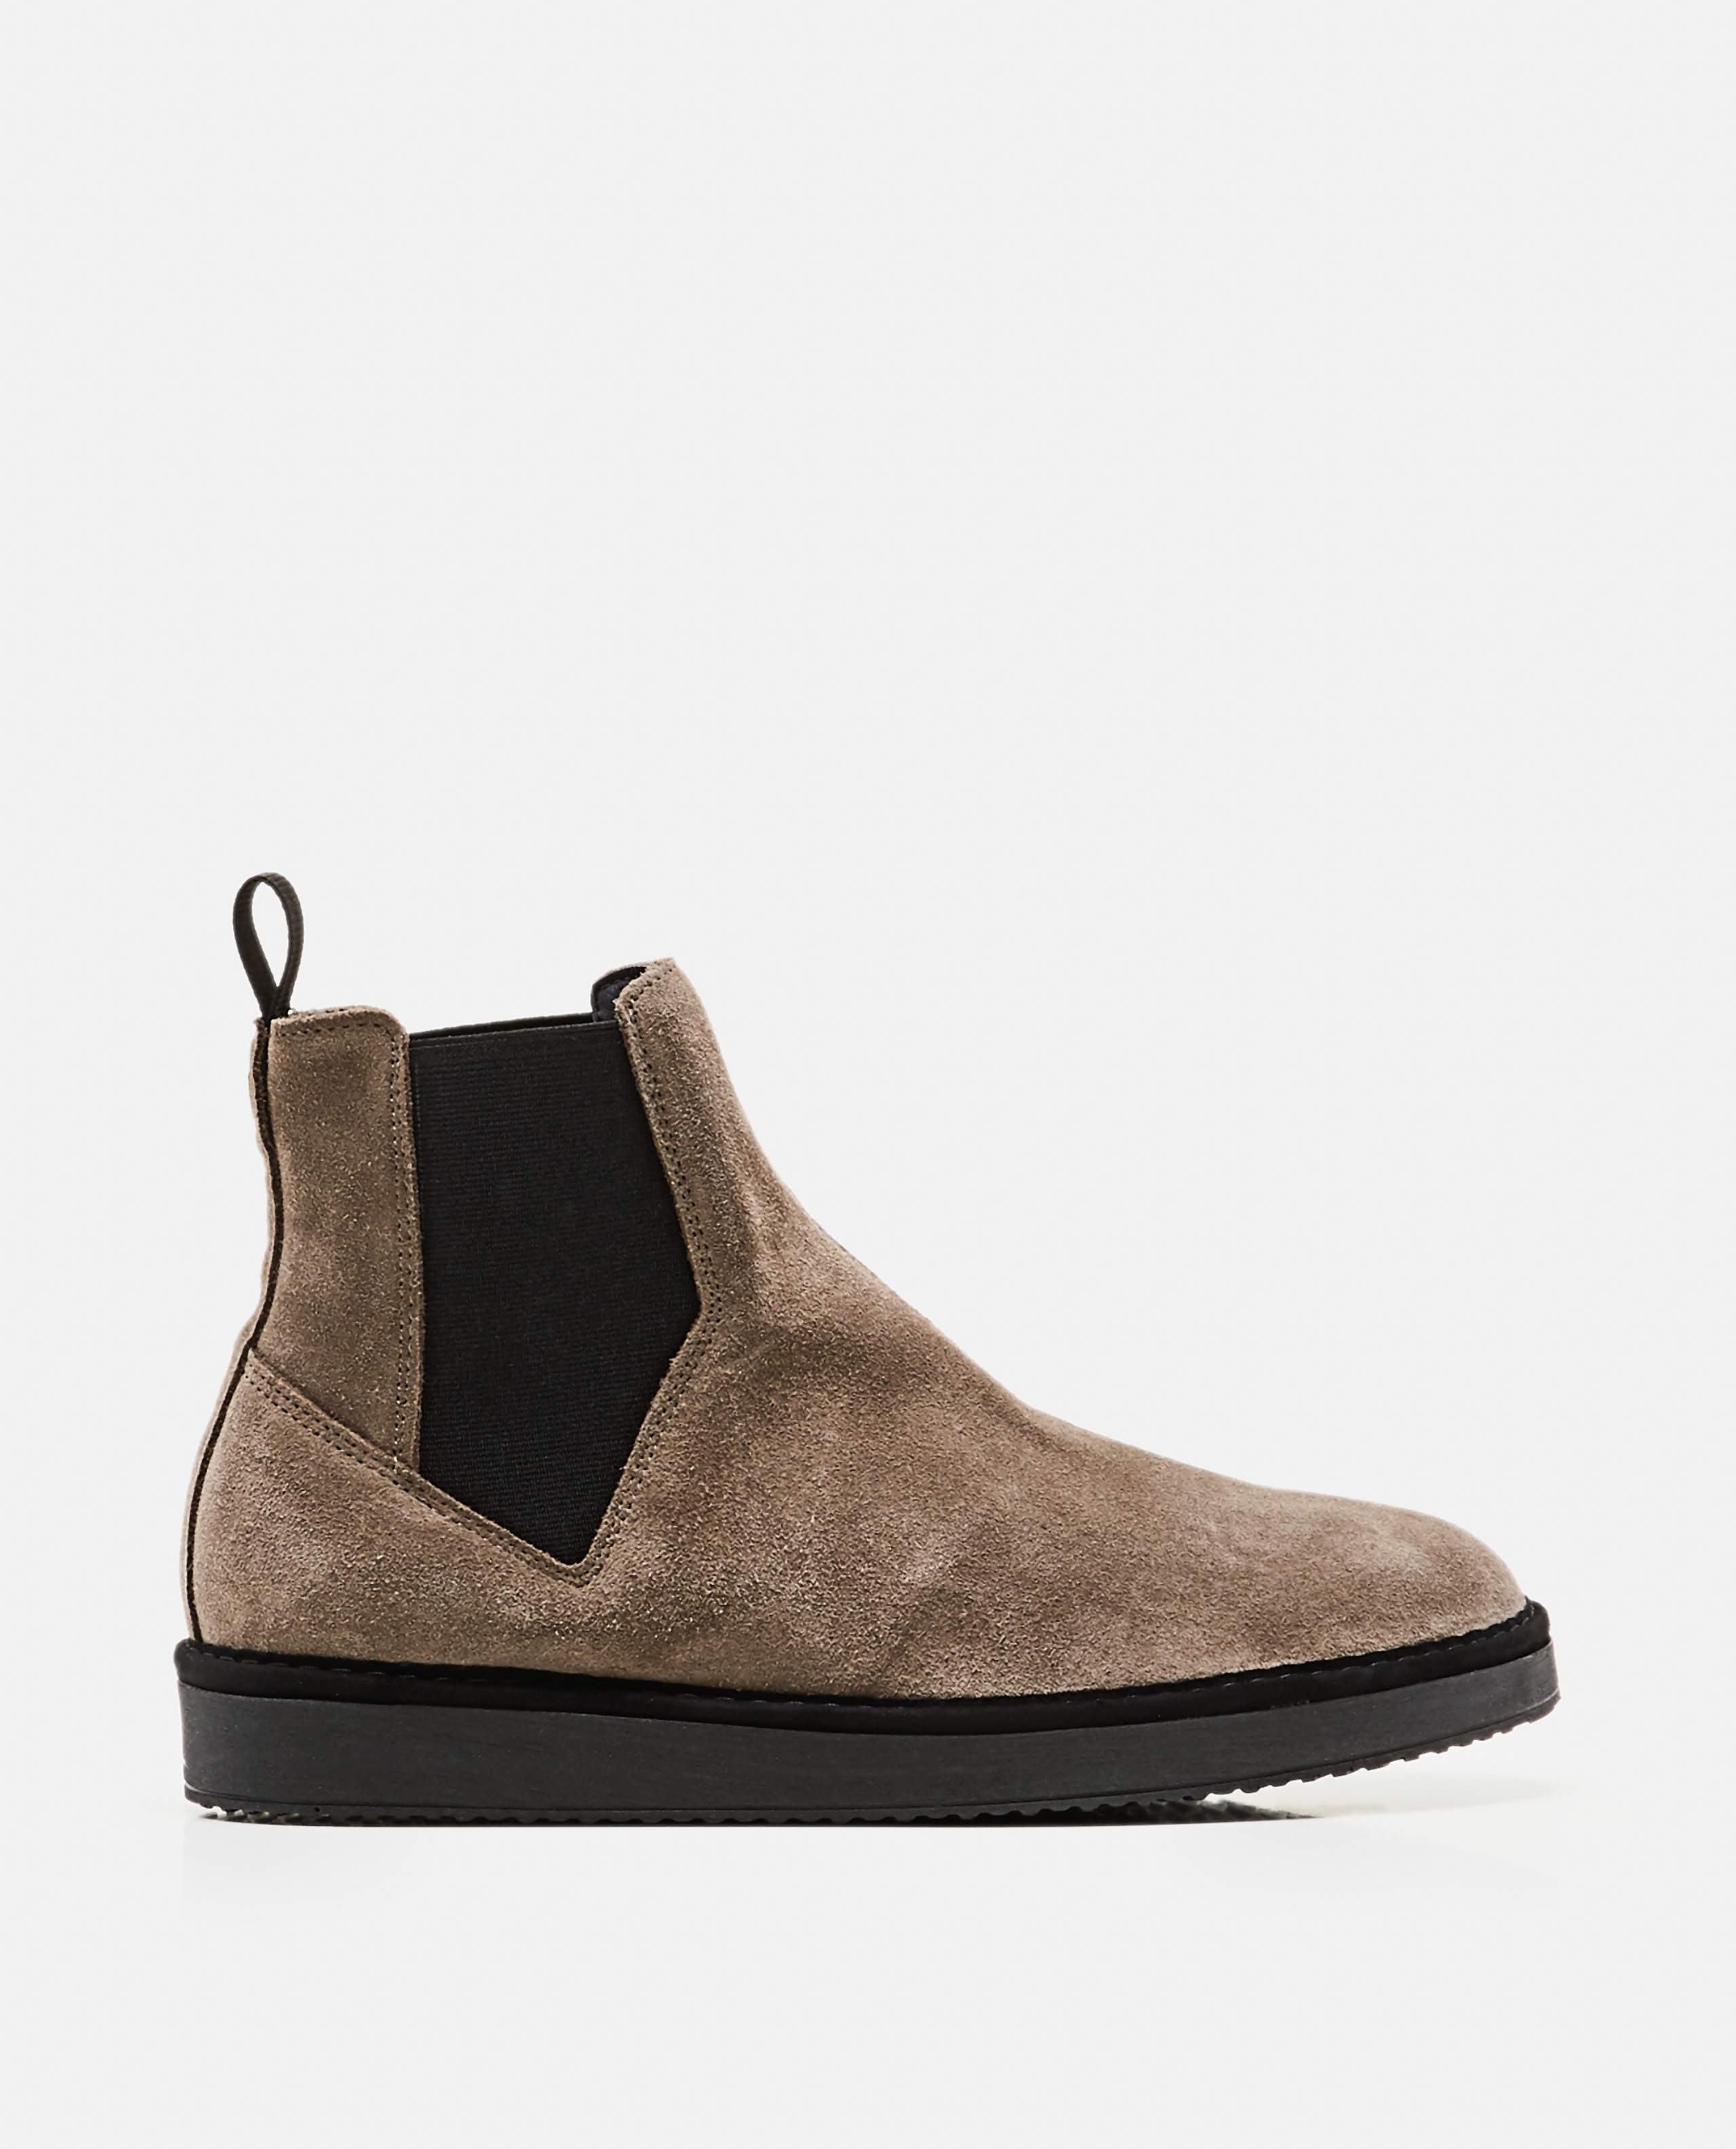 Beatles ankle boot